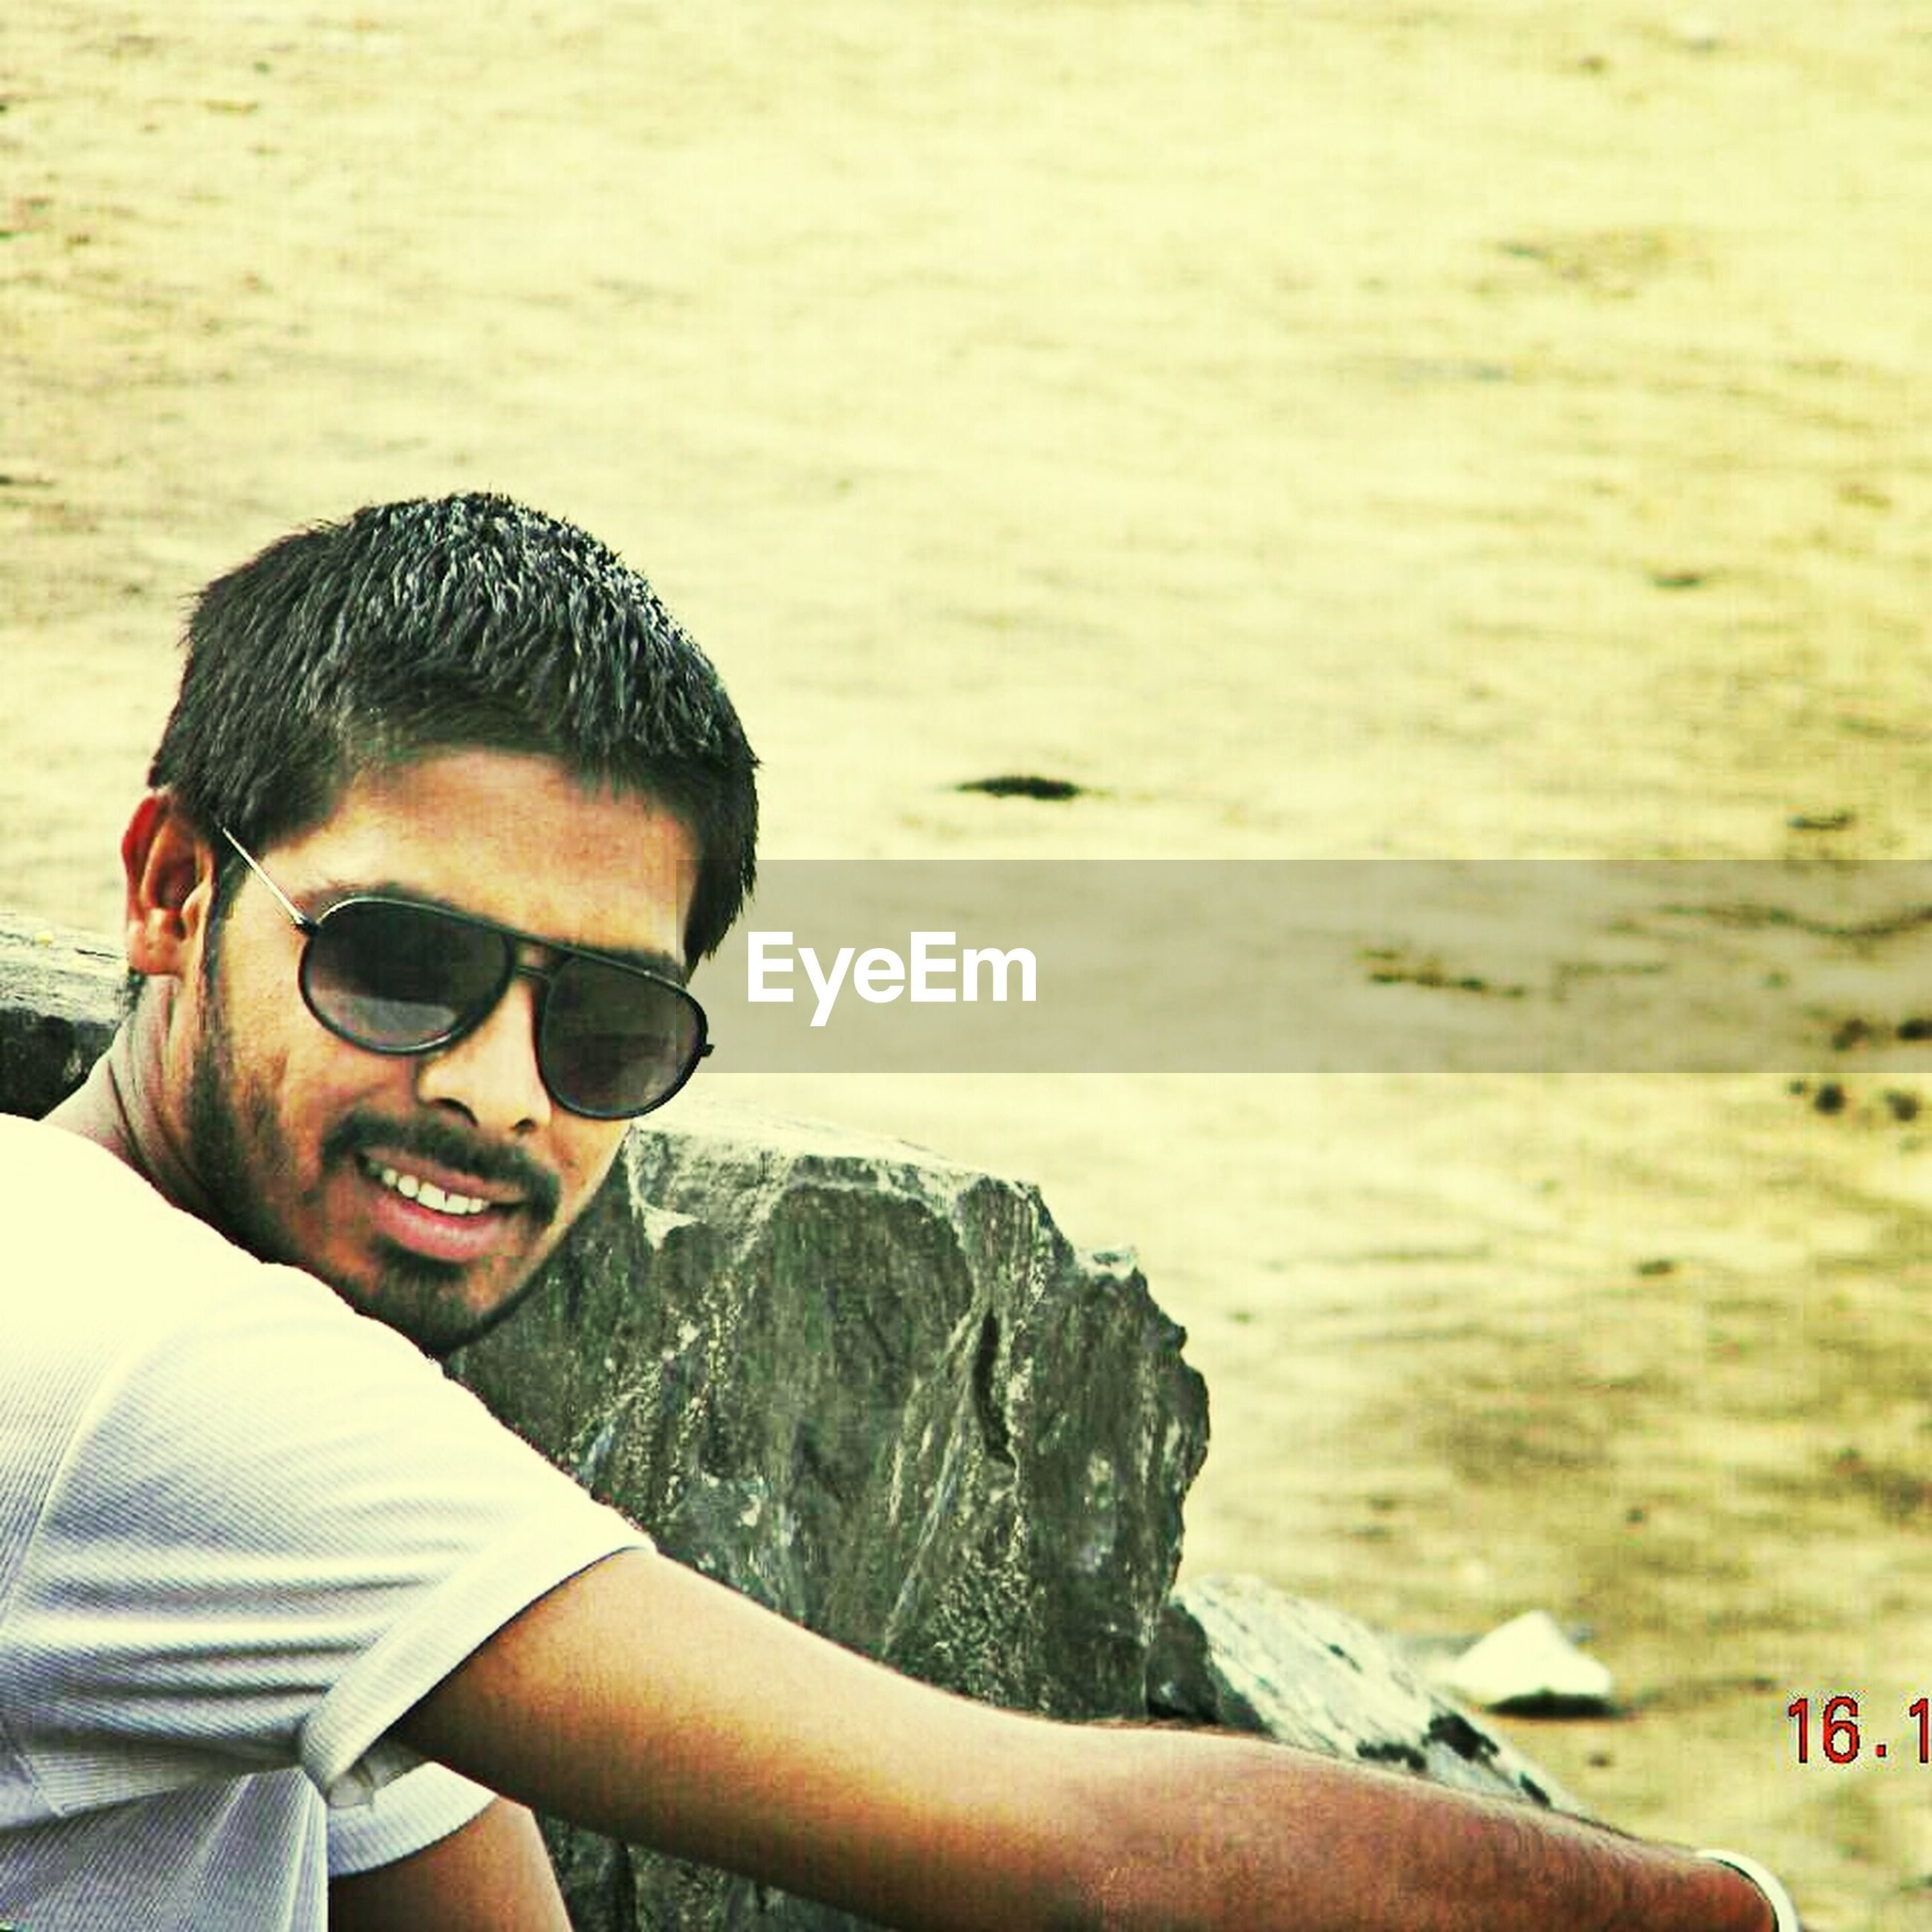 lifestyles, leisure activity, young adult, person, water, young men, headshot, sunglasses, looking at camera, portrait, sea, vacations, smiling, mid adult men, front view, head and shoulders, mid adult